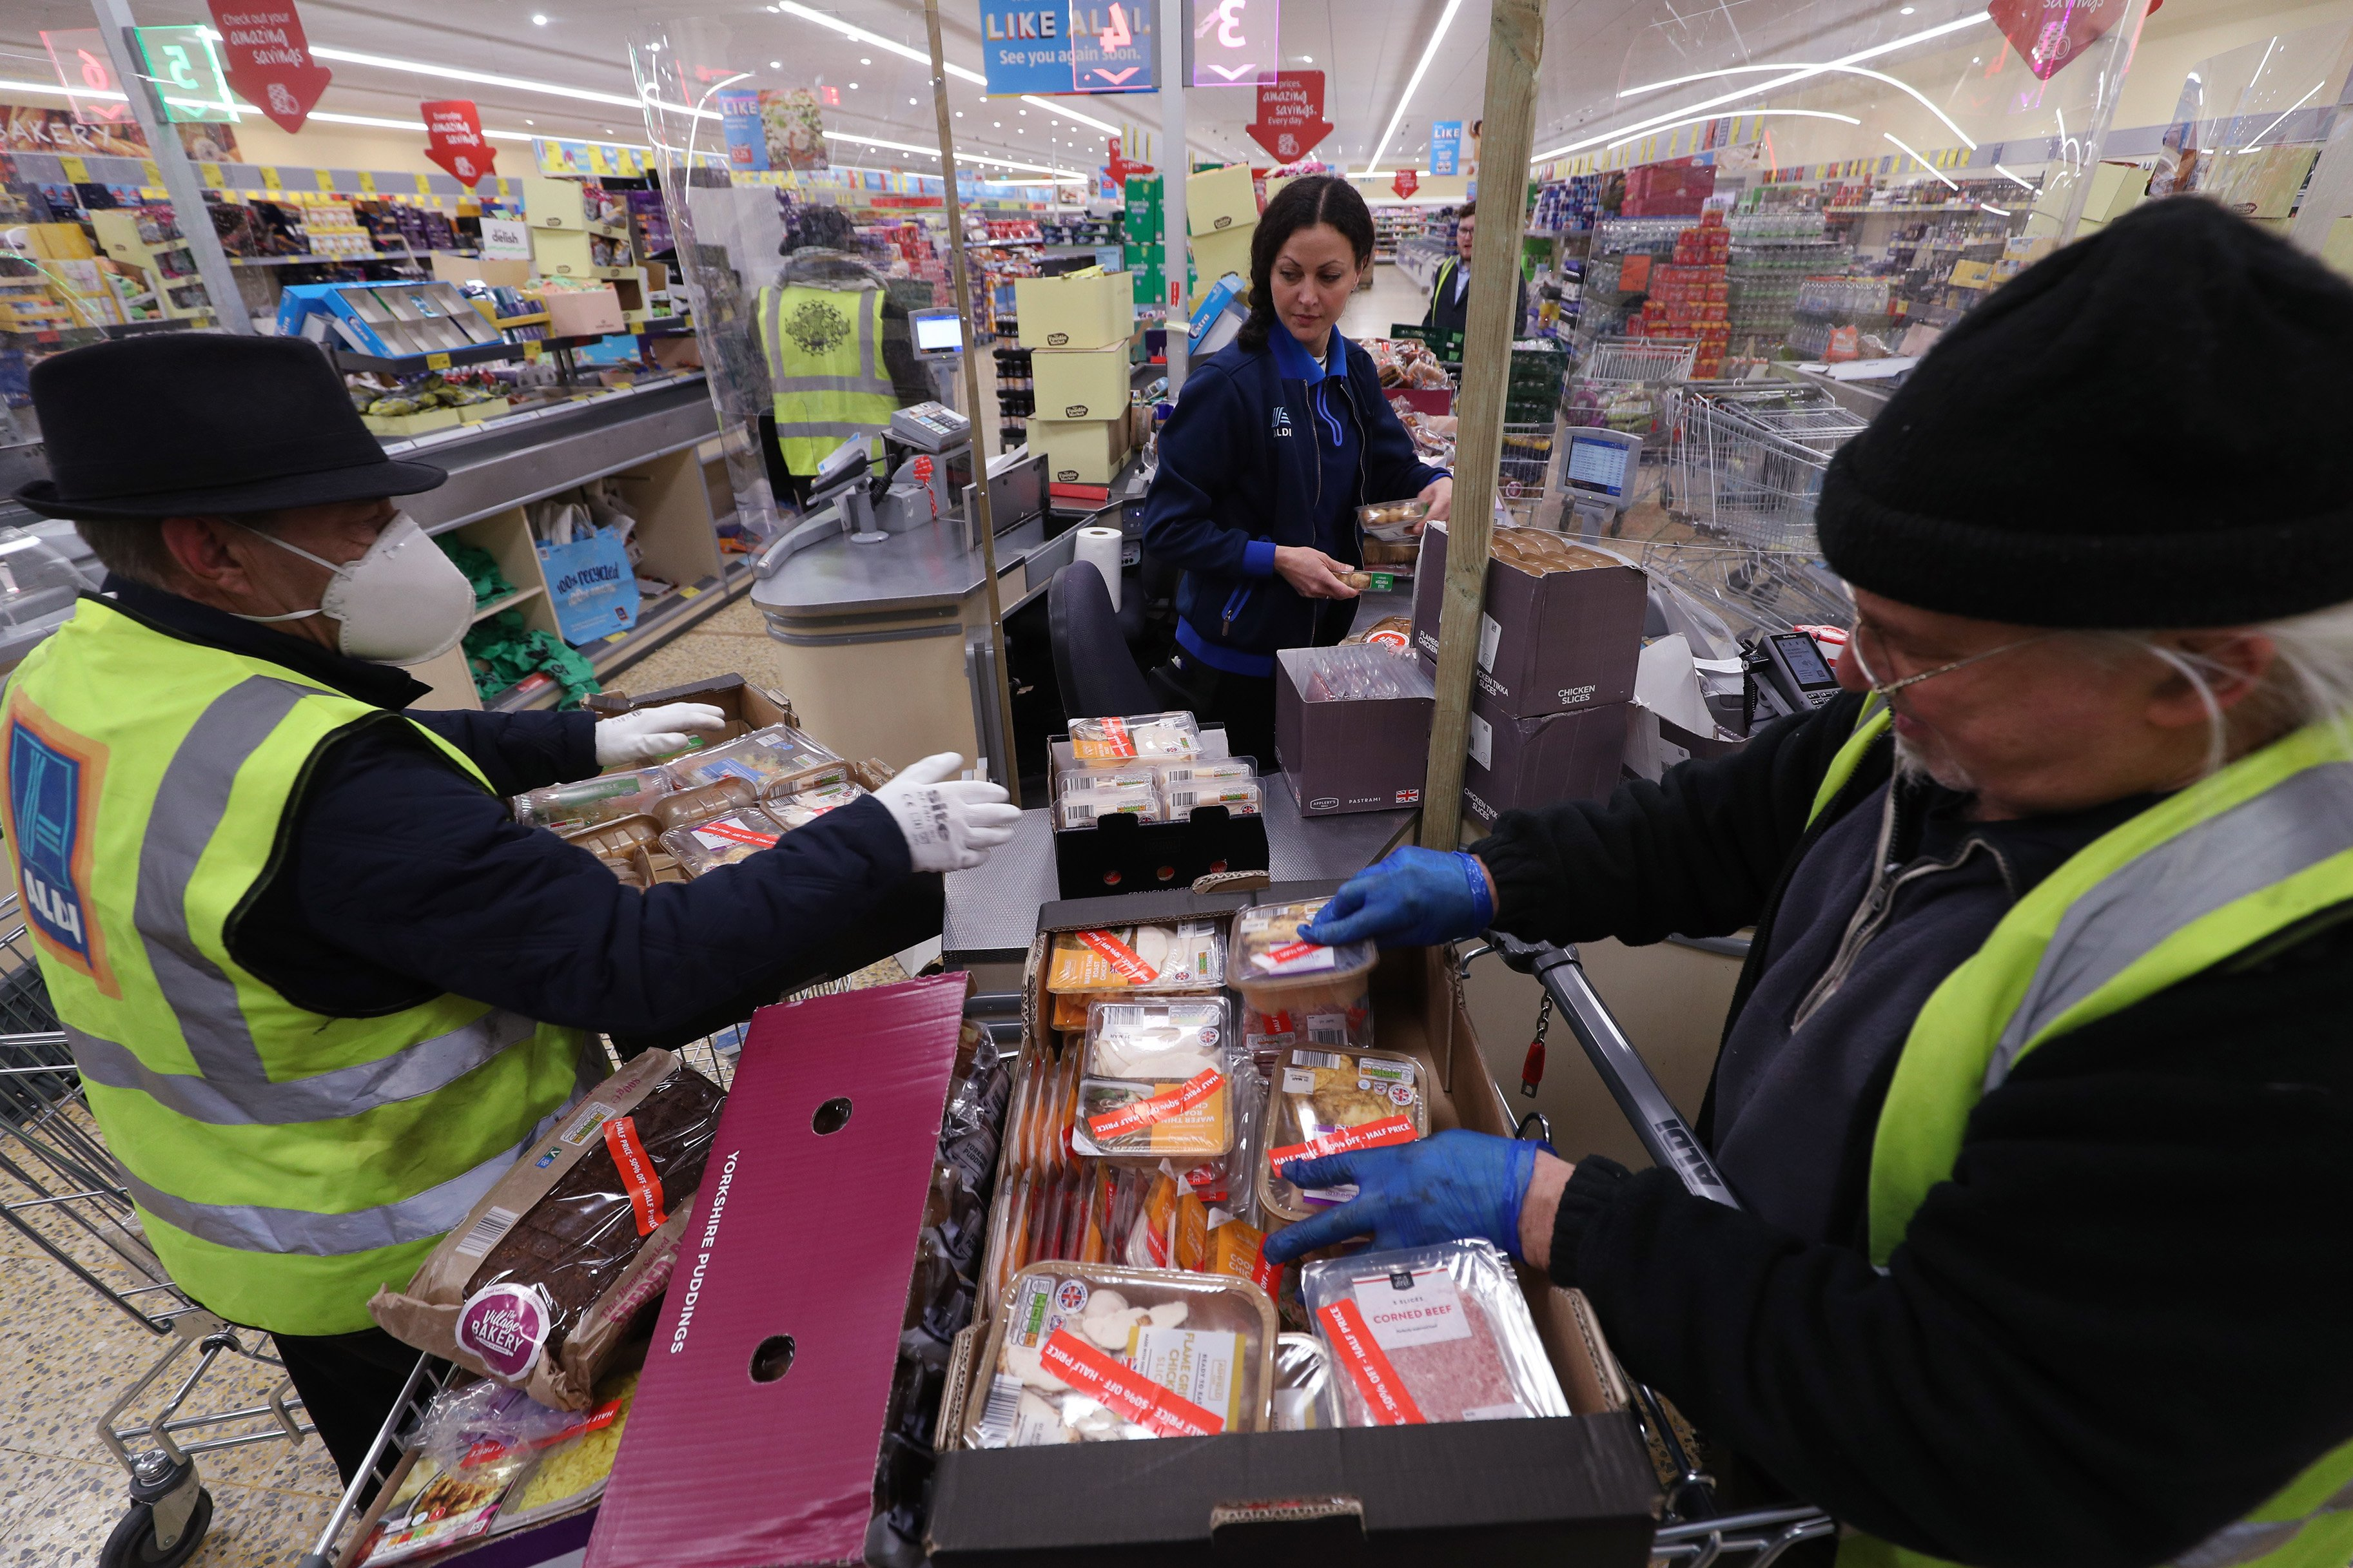 Food items being packaged at an Aldi Supermarket in London during the COVID-19 pandemic. | Photo: Getty Images.